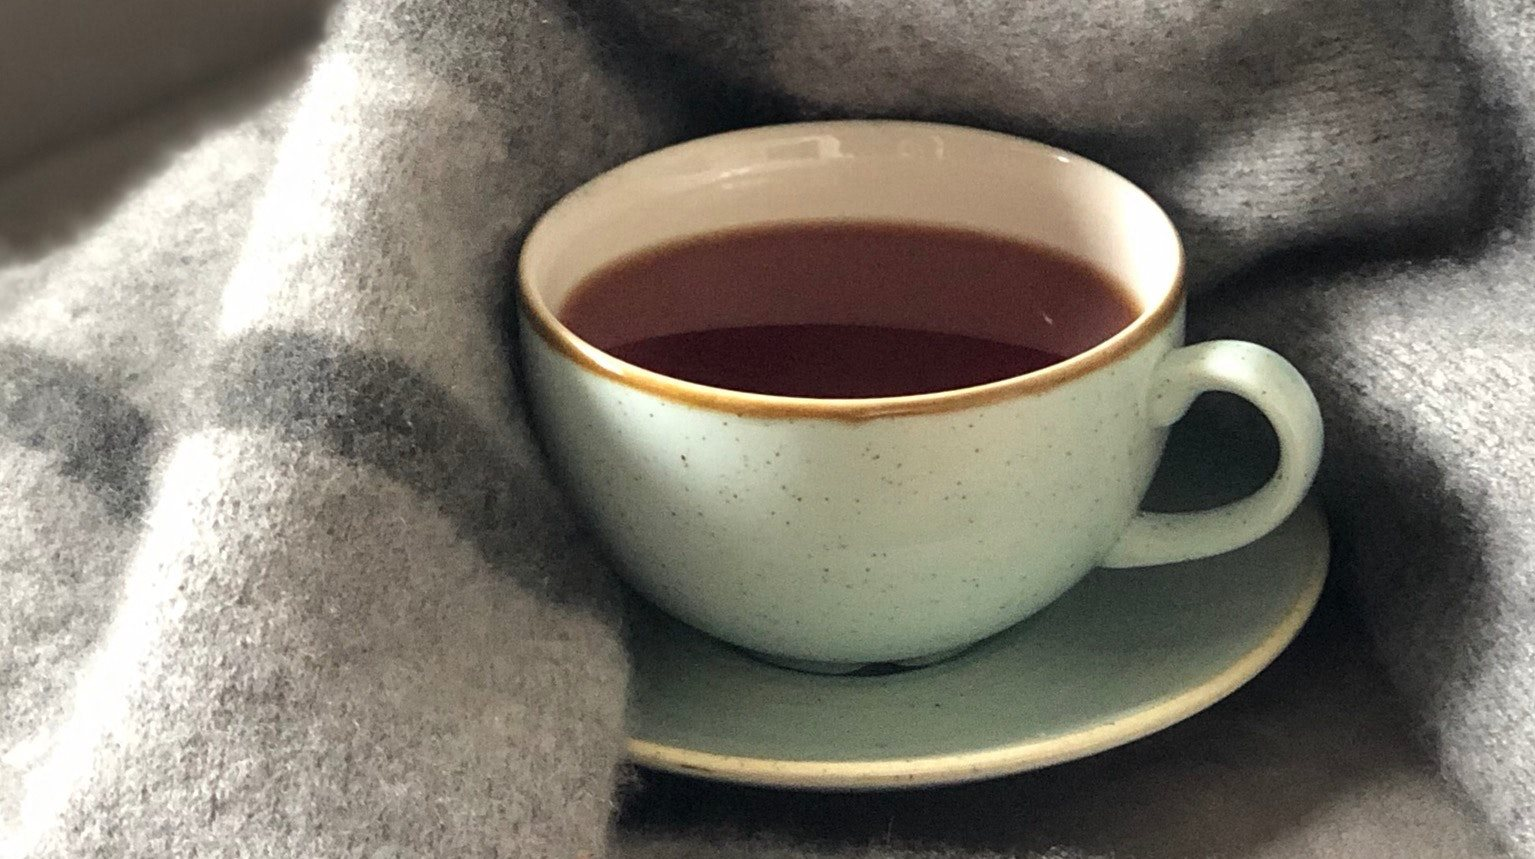 Stock Image of Tea Cup with Blanket on Grey Armchair